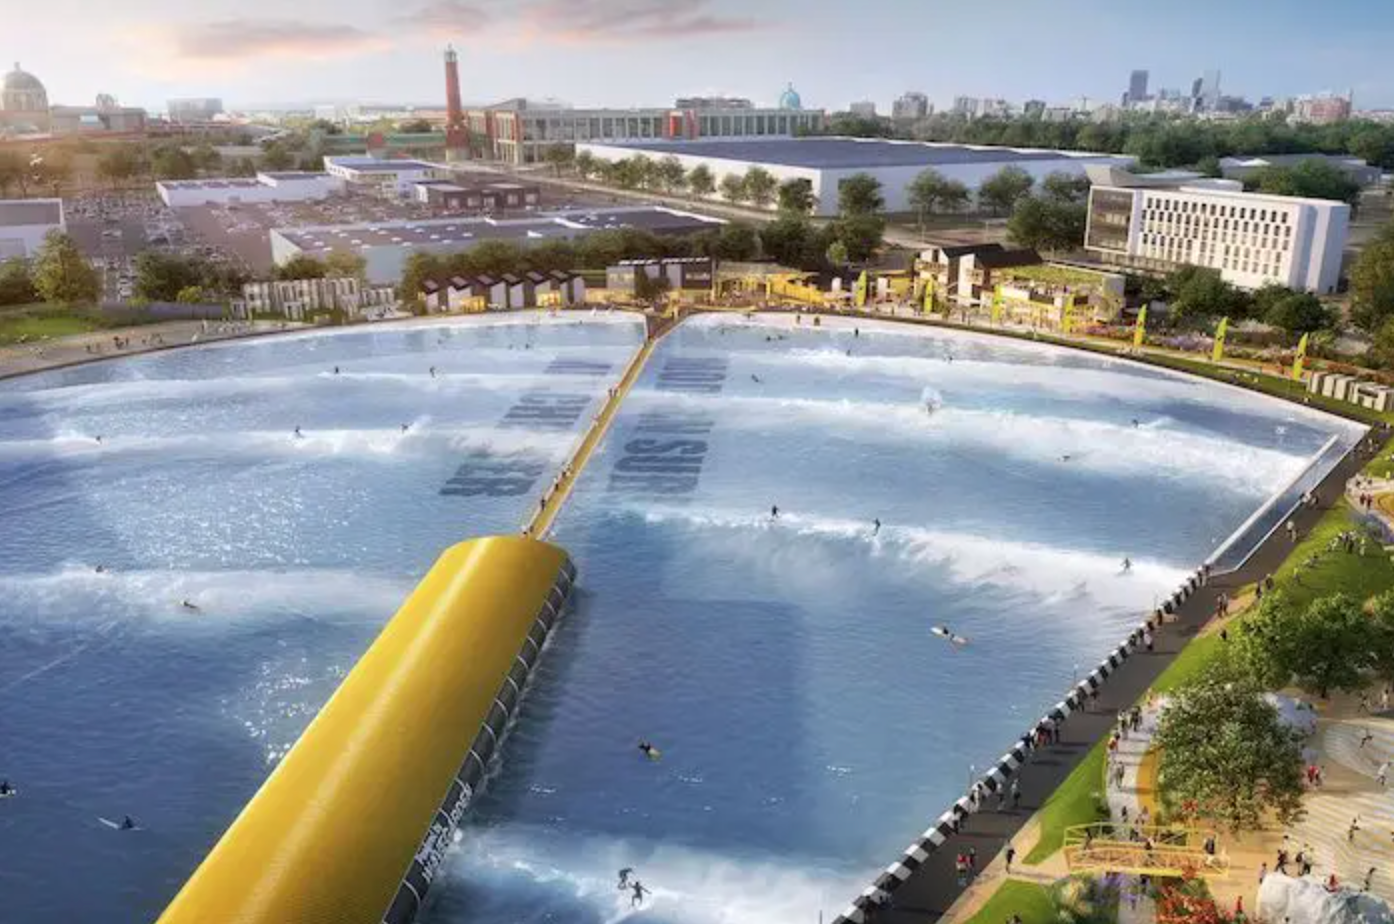 Plans officially approved for new £60 million surfing lagoon in Trafford, The Manc